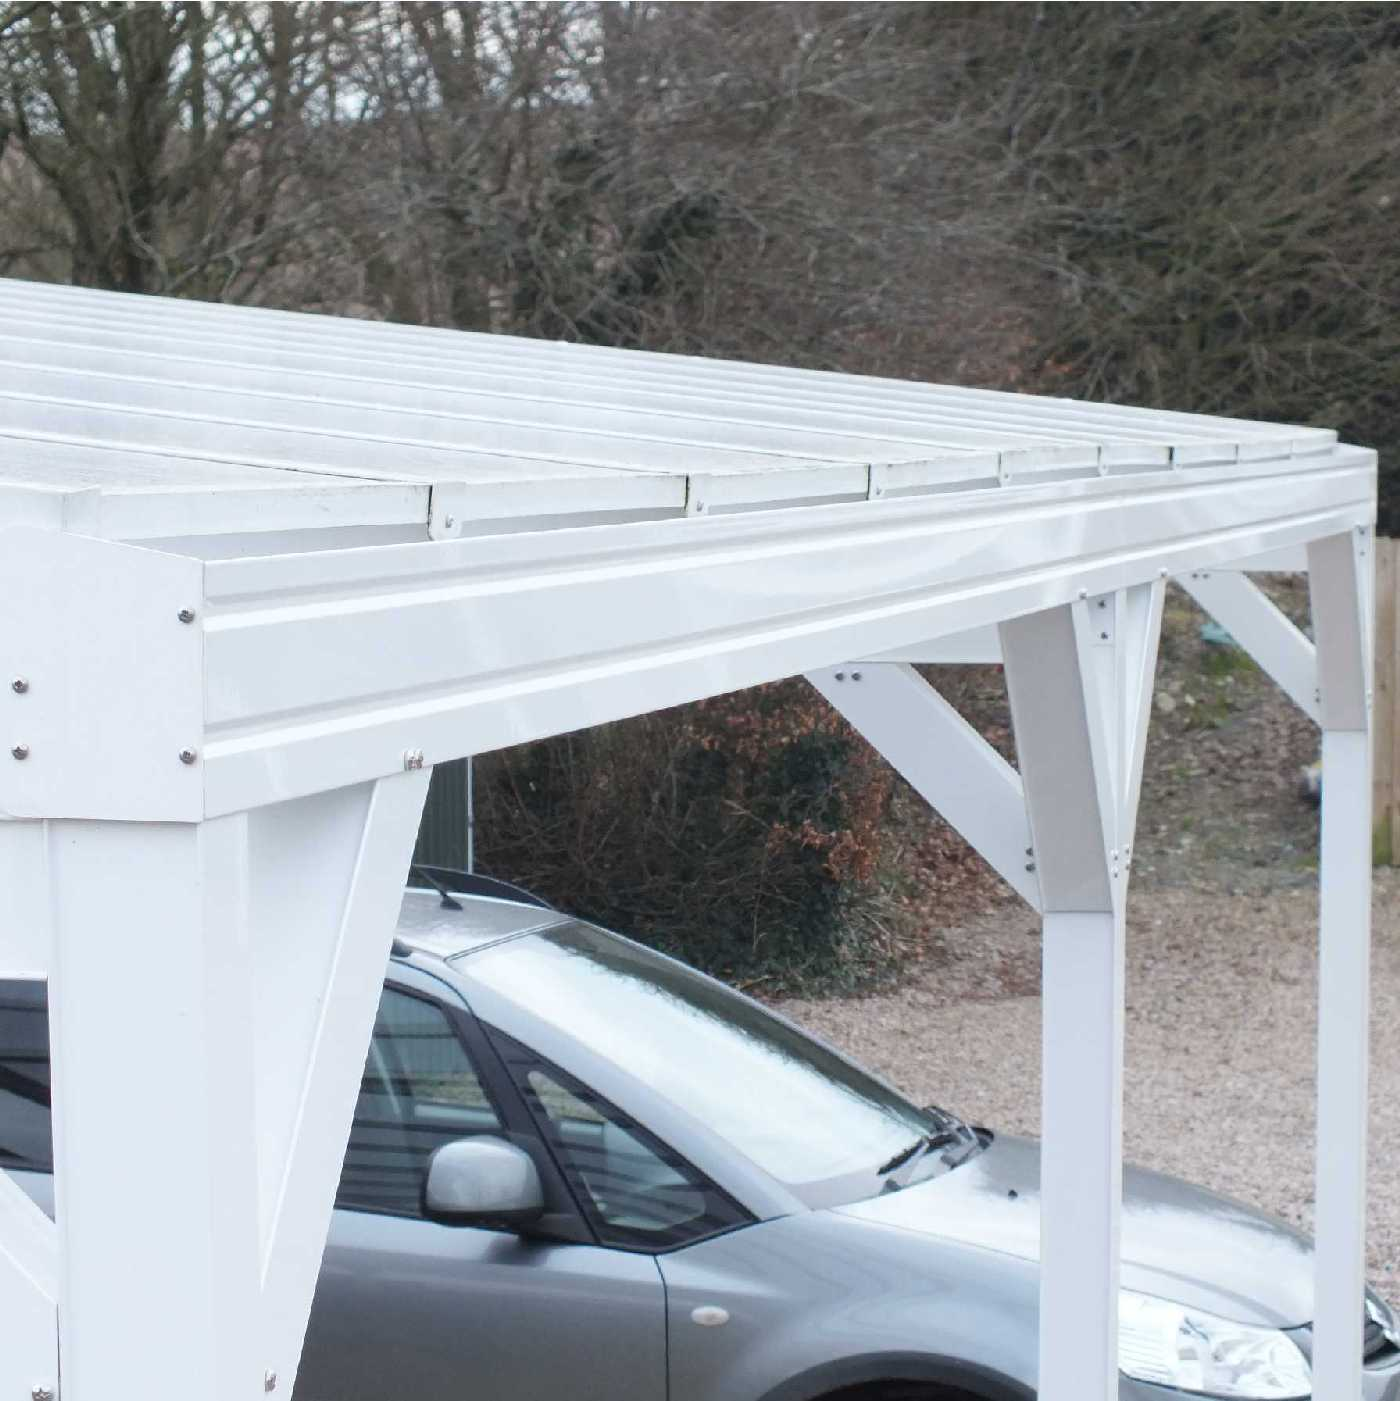 Omega Smart Free-Standing, MonoPitch Roof Canopy with 16mm Polycarbonate Glazing - 4.9m (W) x 3.5m (P), (6) Supporting Posts from Omega Build